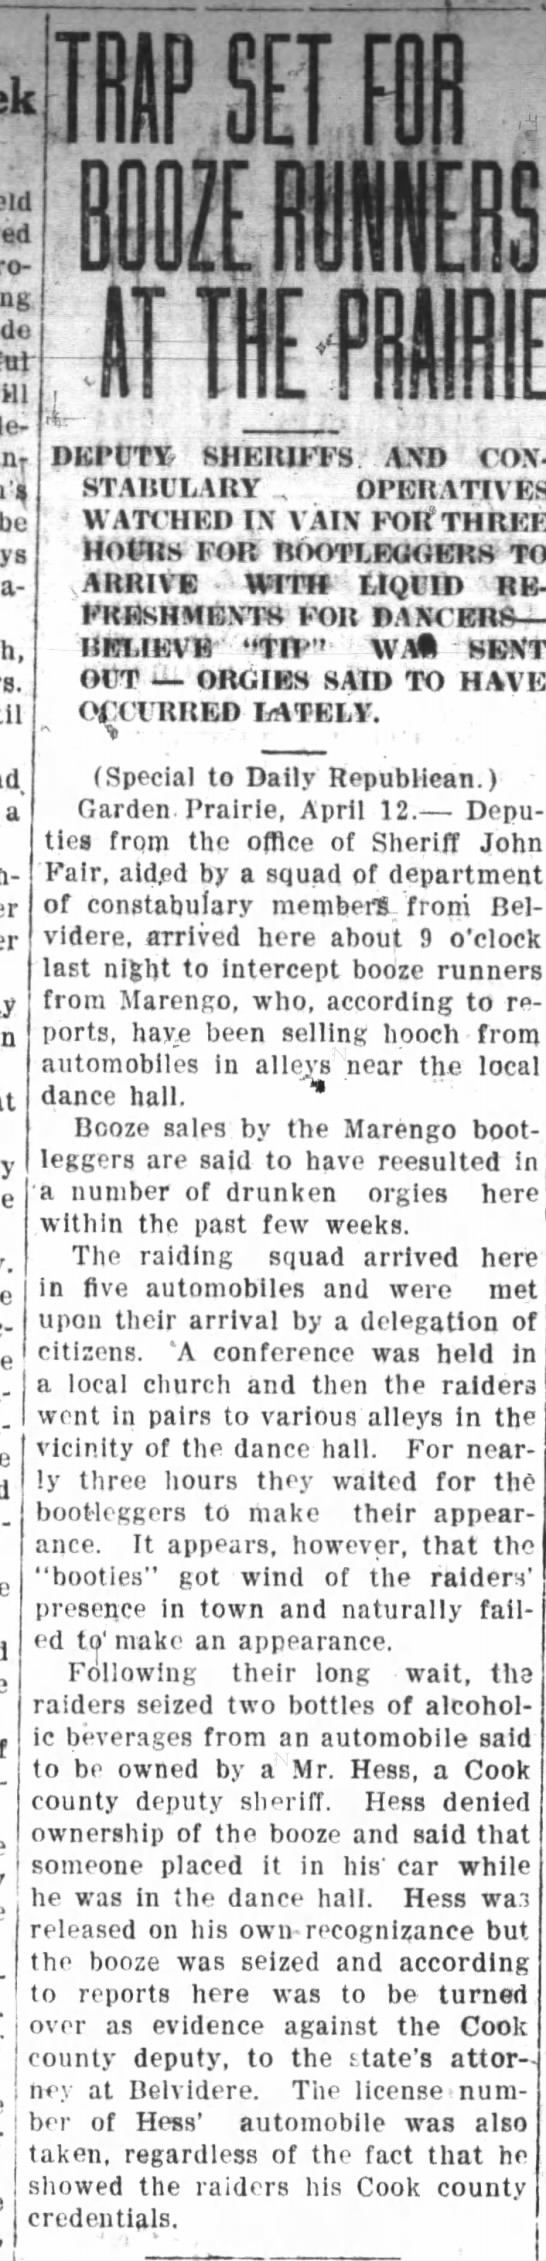 Booze Runners from Marengo at Boone County Dance Hall Republican-Northwester 18 APR 1924 - mlscellan- be a John- SH EIUFFS AND COX-...